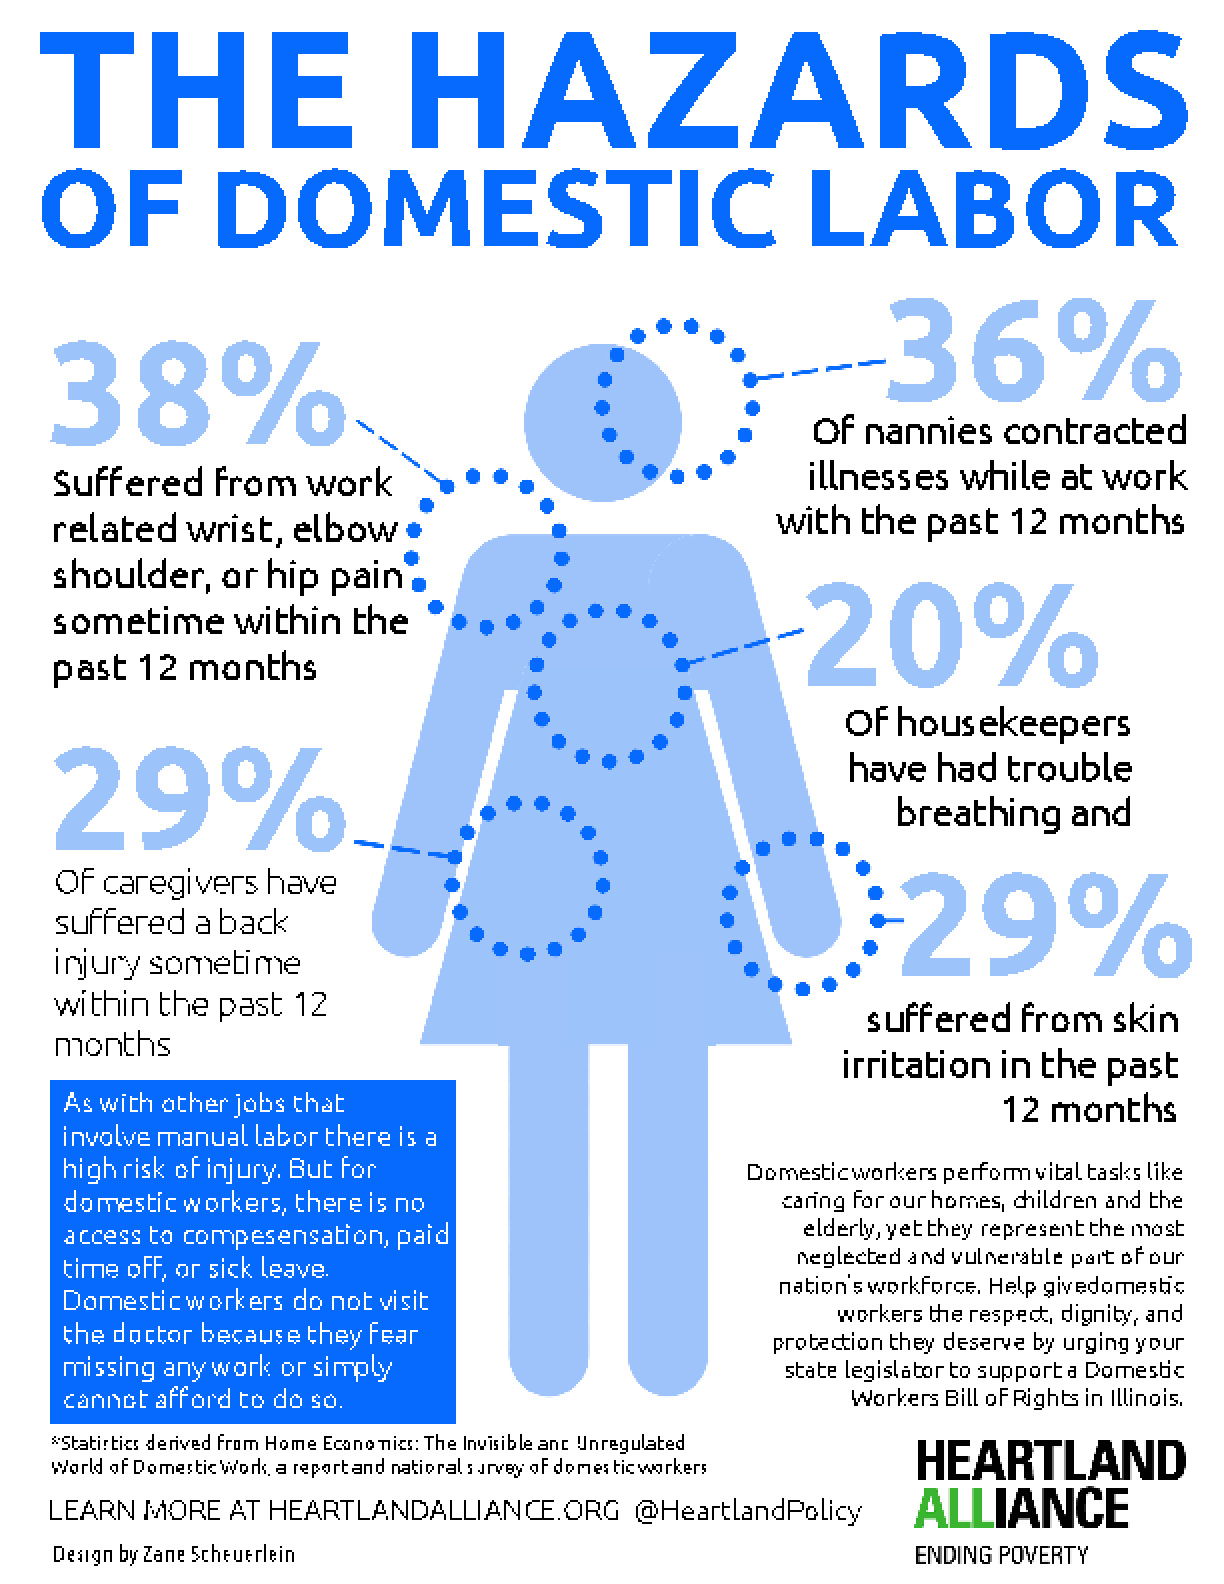 Infographic: The Hazards of Domestic Labor